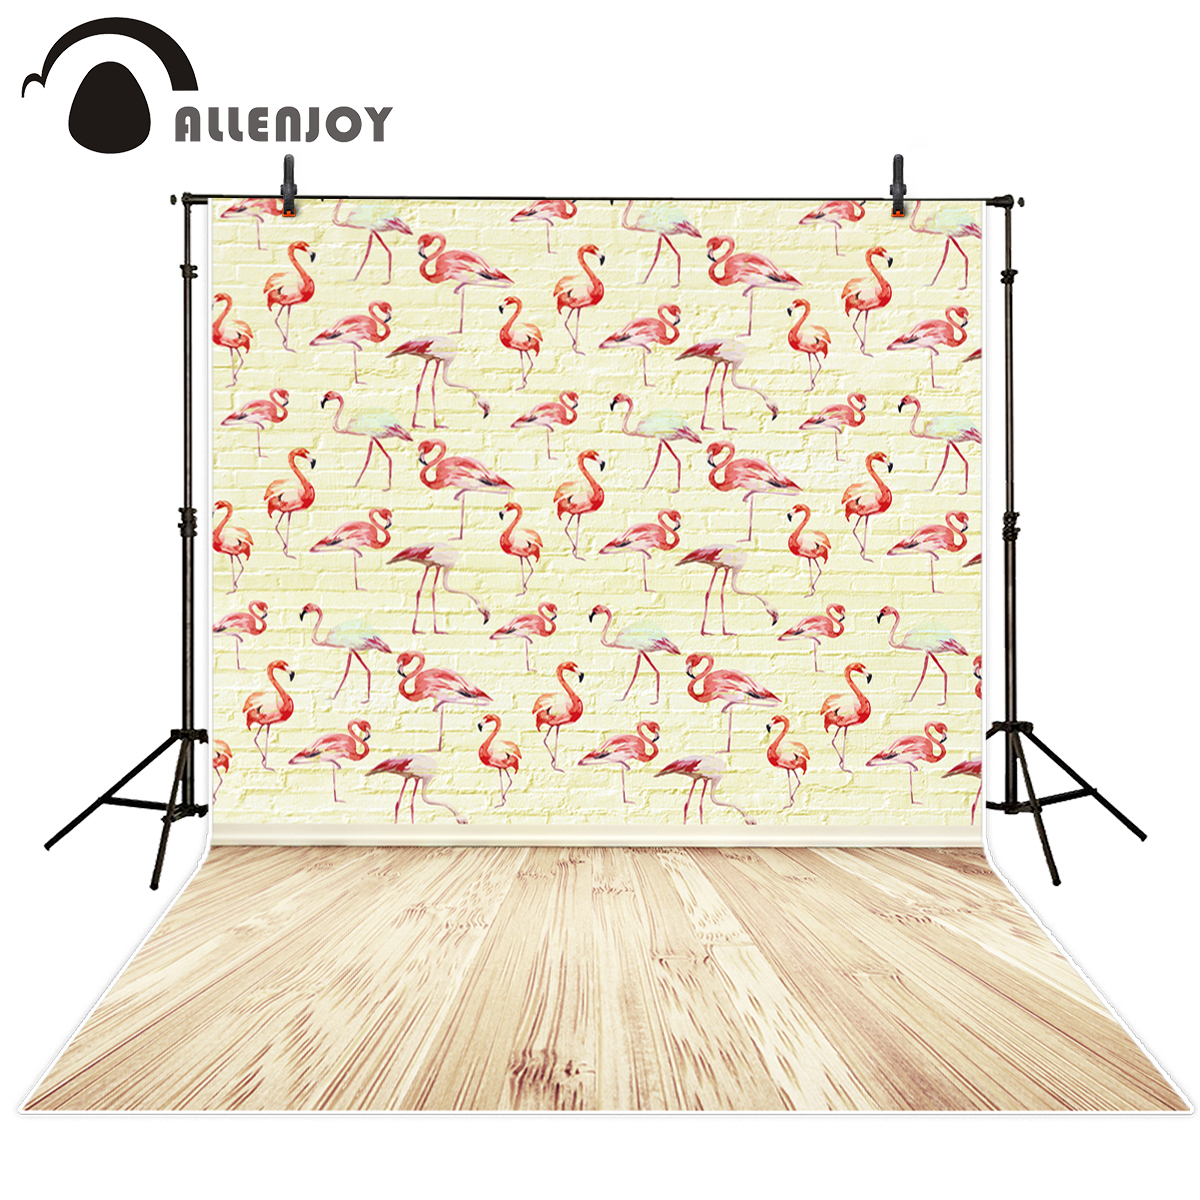 Allenjoy photography backdrop Yellow brick wall flamingo repeat children background newborn original design for photo studio allenjoy background for photo studio full moon spider black cat pumpkin halloween backdrop newborn original design fantasy props